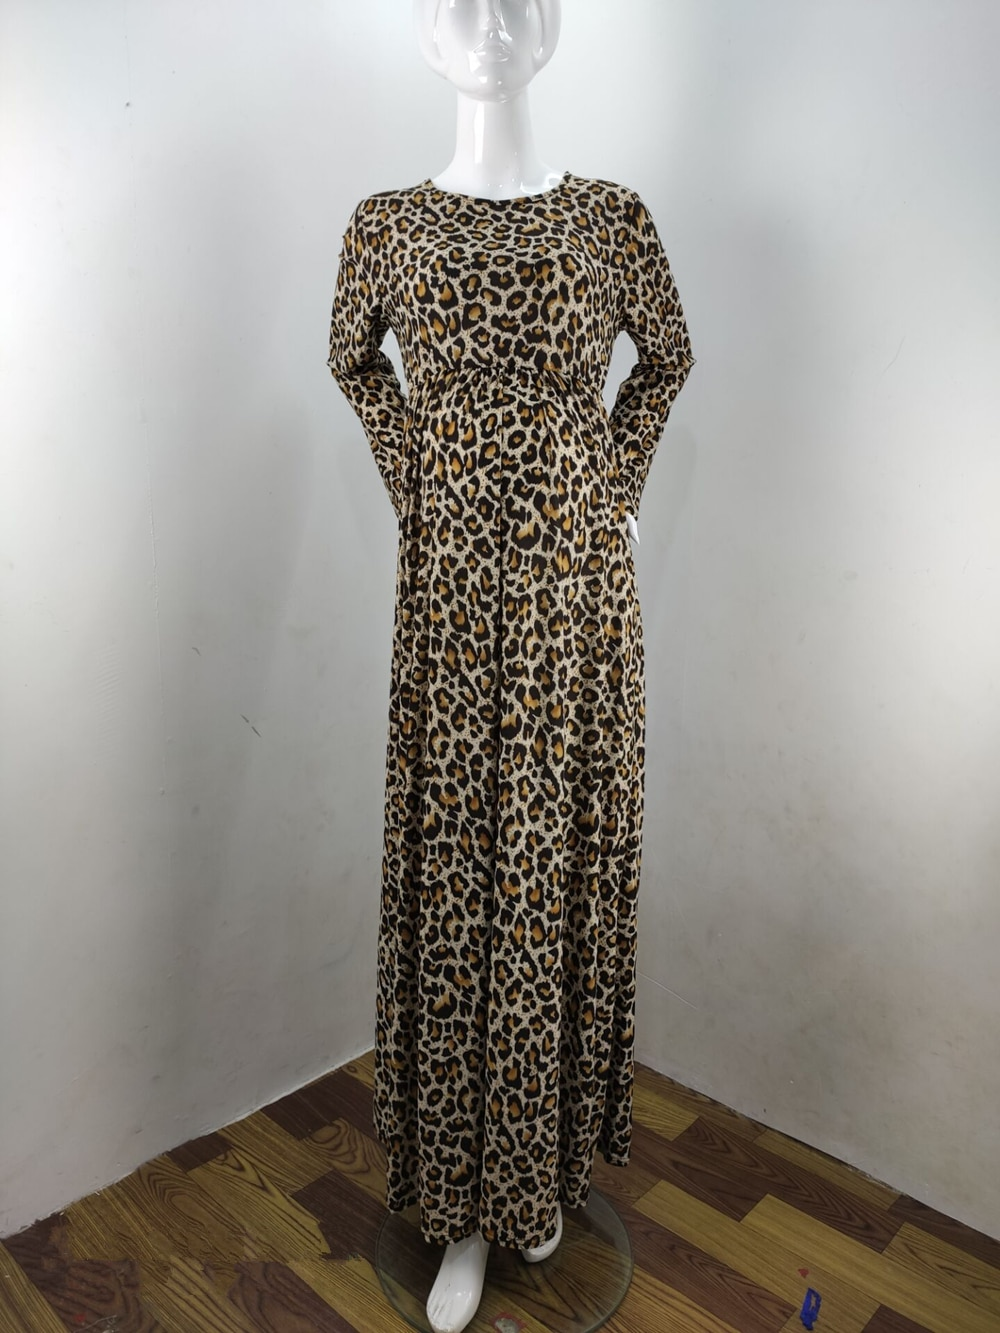 Fashion Maternity Dresses Photography Props Leopard Pregnancy Dress Long Sleeve Maternity Clothes For Pregnant Women Photo Shoot (5)